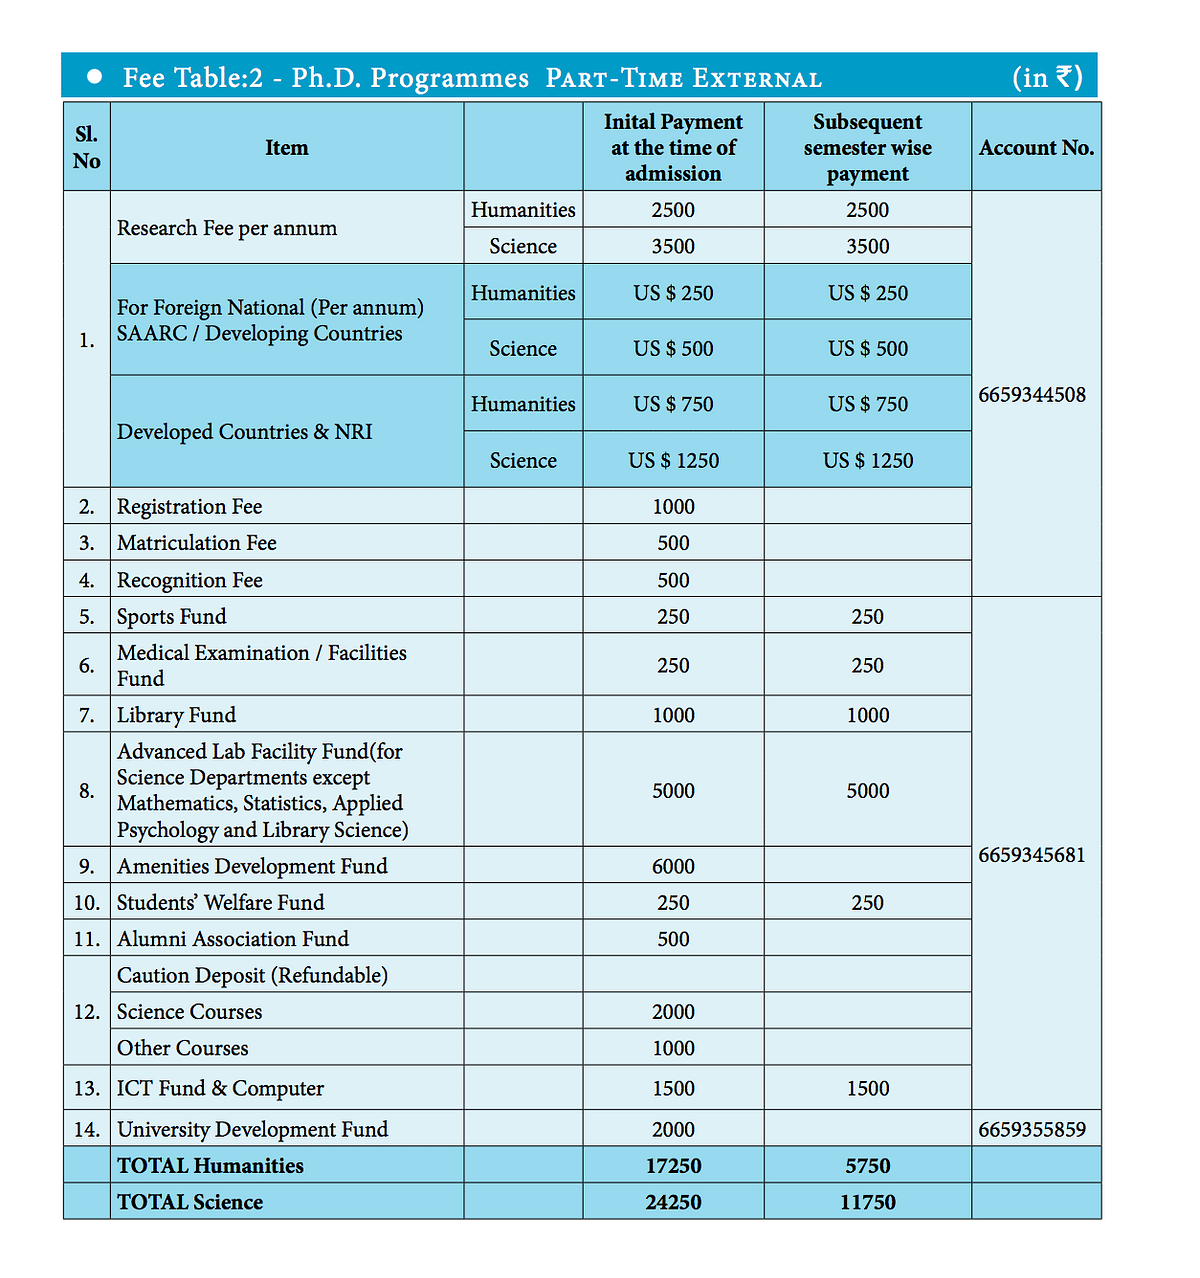 The fees structure for Ph.D. programmes.